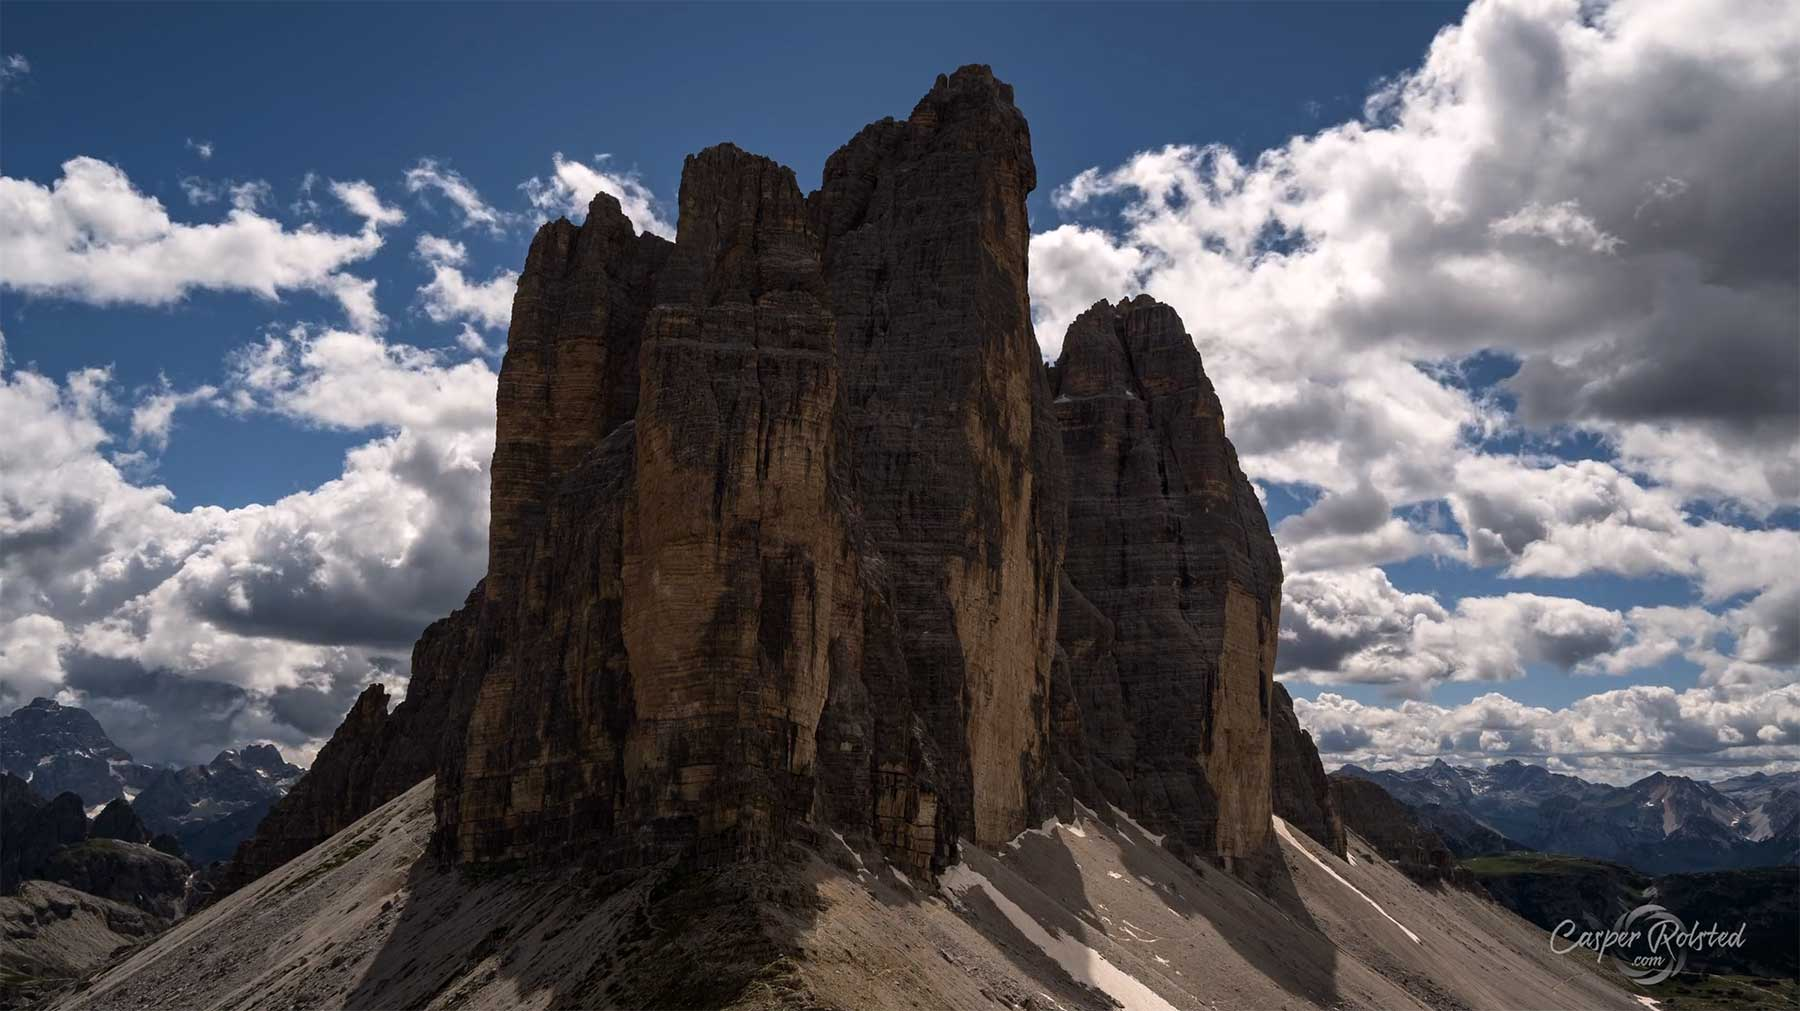 The Silence of the Dolomites